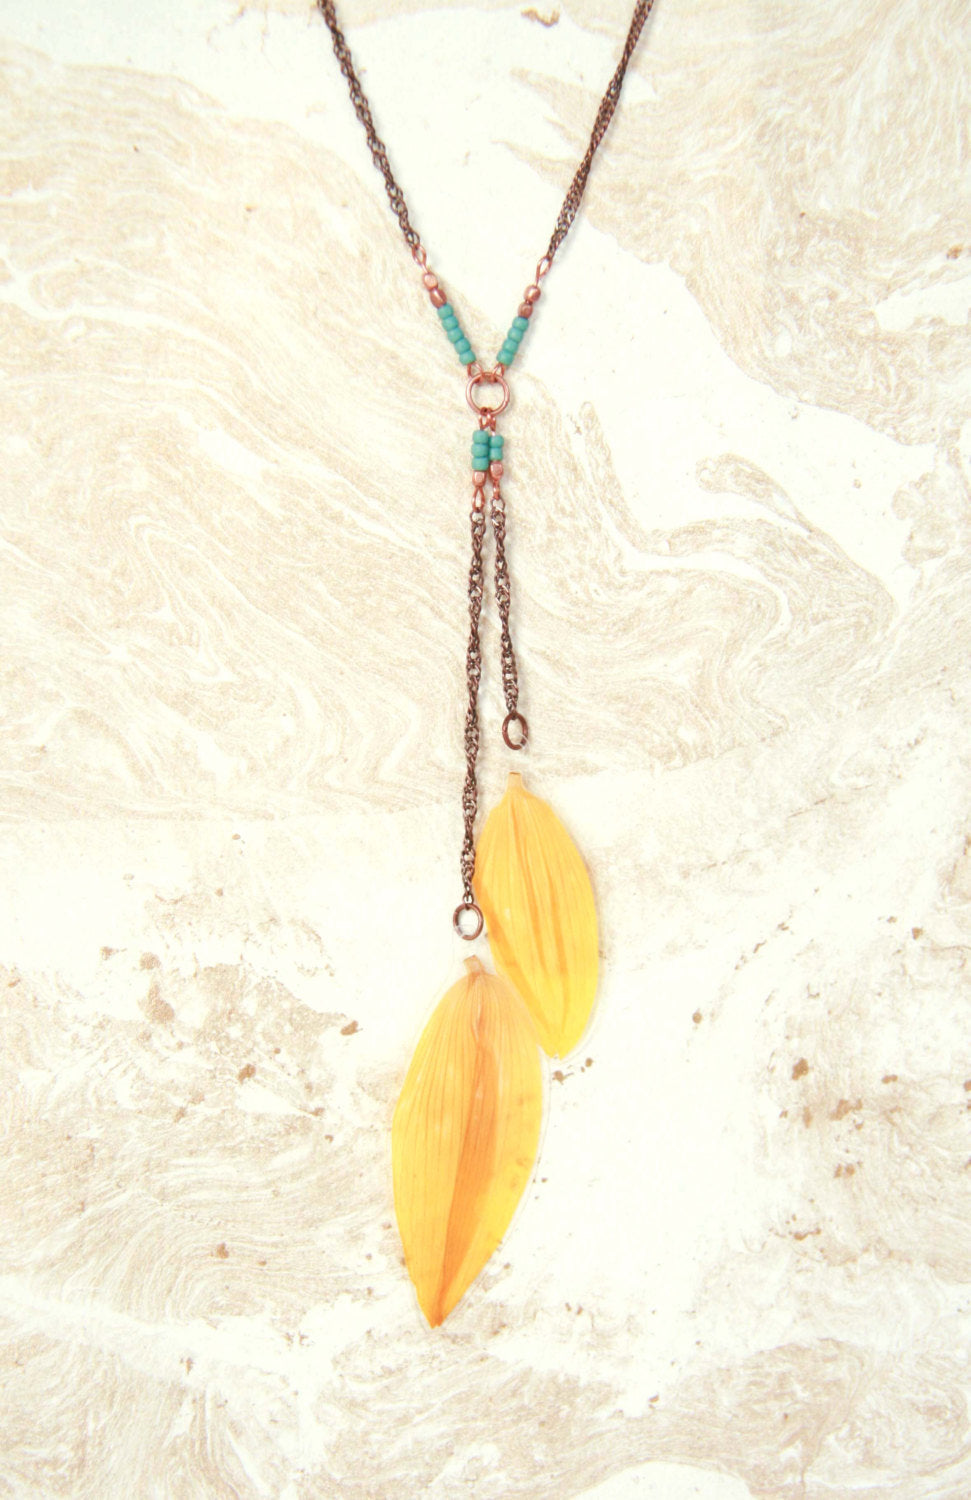 Yellow Sunflower Pressed Petal Necklace with Copper & Turquoise Glass Beads